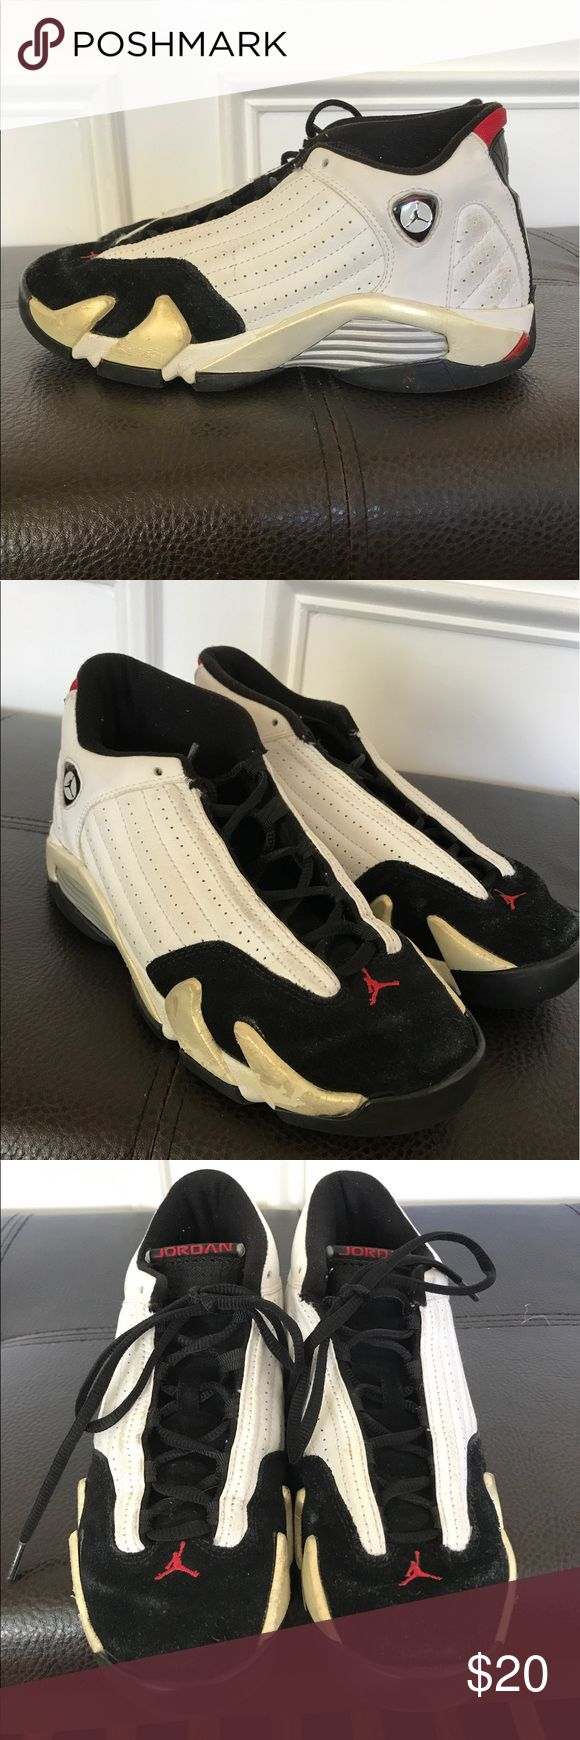 Retro Jordan 14's black, white, red Worn, scuff marks shown in picture. 100% authentic. Size 5 youth or 7 in womens Air Jordan Shoes Athletic Shoes